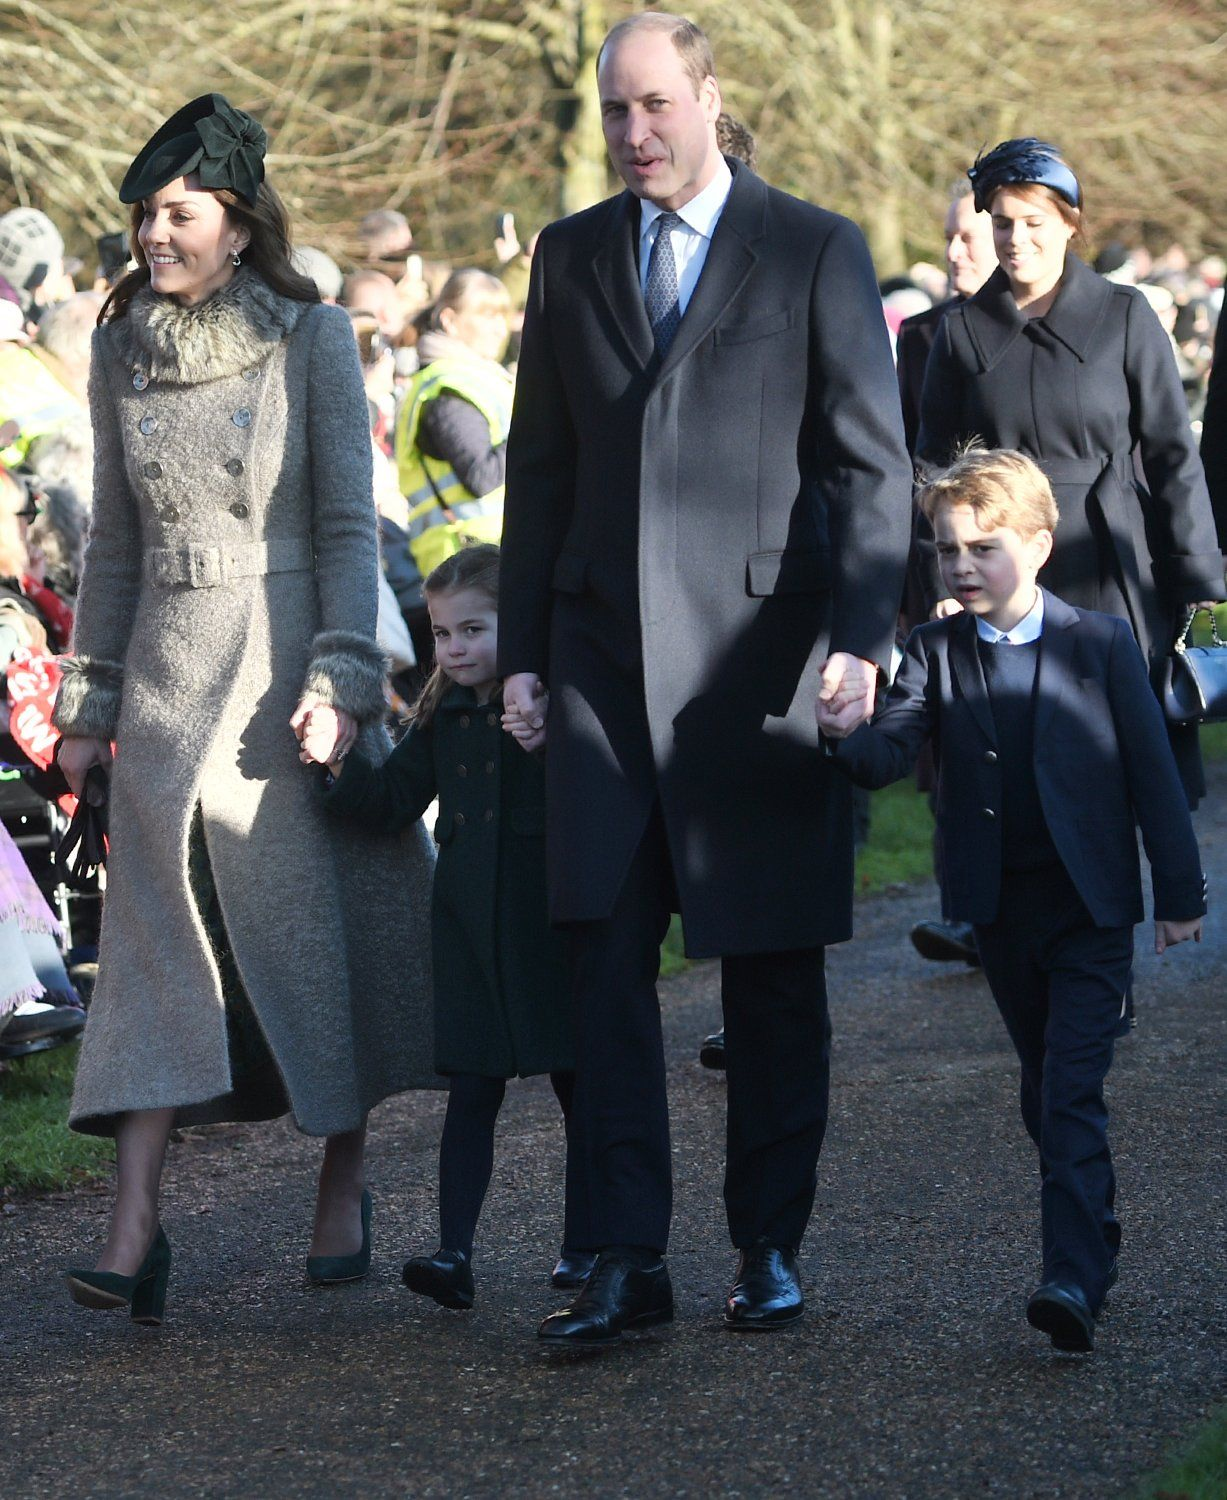 Prince George and Princess Charlotte Make Their Christmas Day Debut Alongside William and Kate! – Yahoo Entertainment